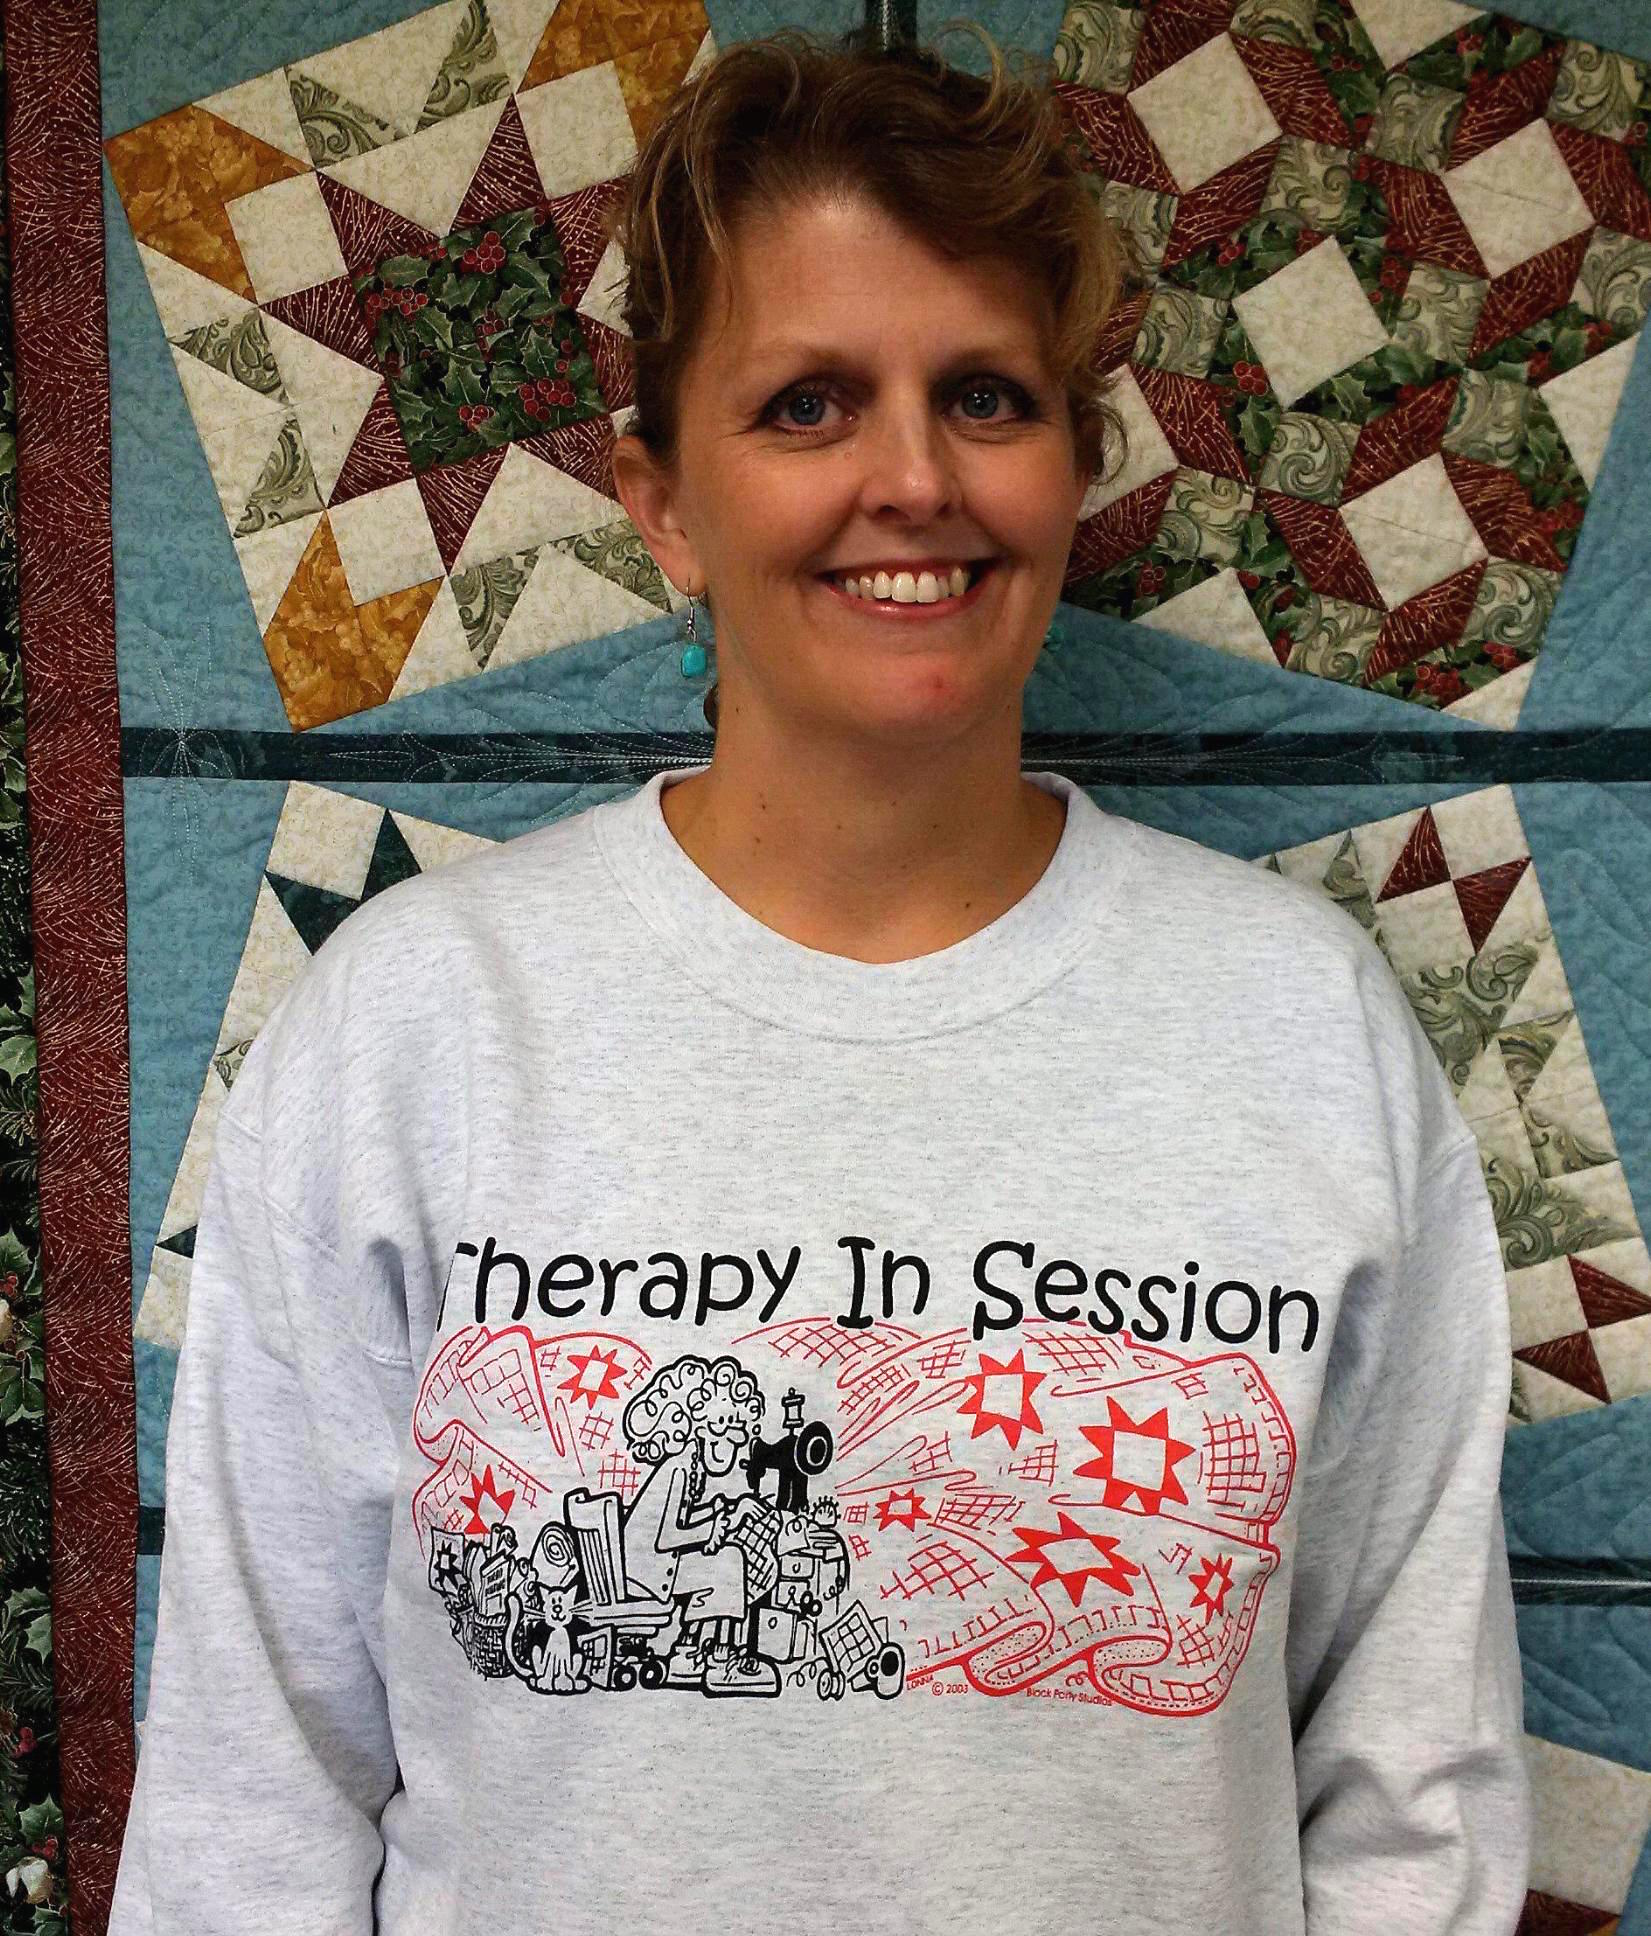 Therapy in Session Sweatshirt